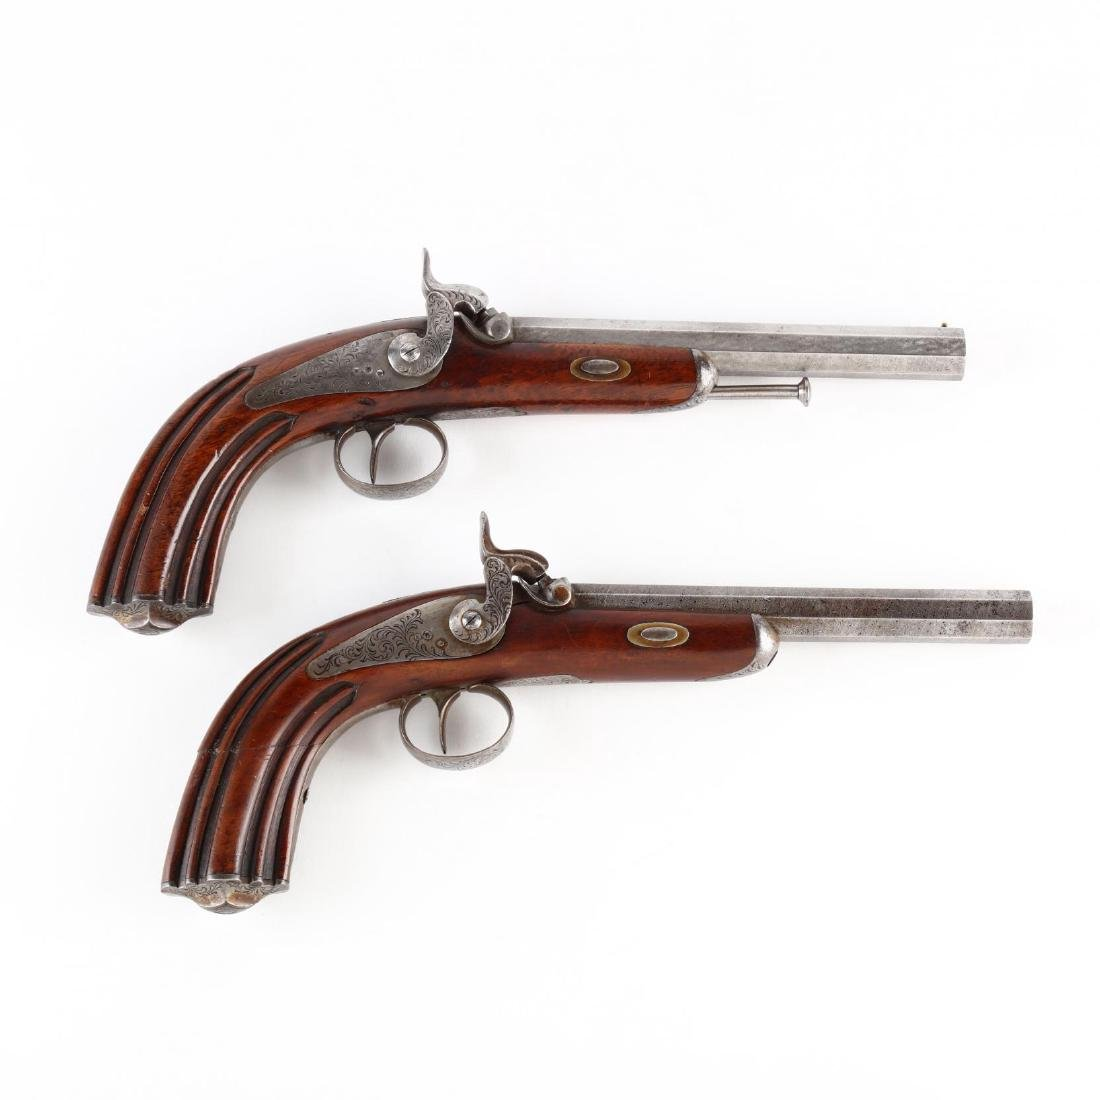 Matched Pair of Continental Percussion Dueling Pistols